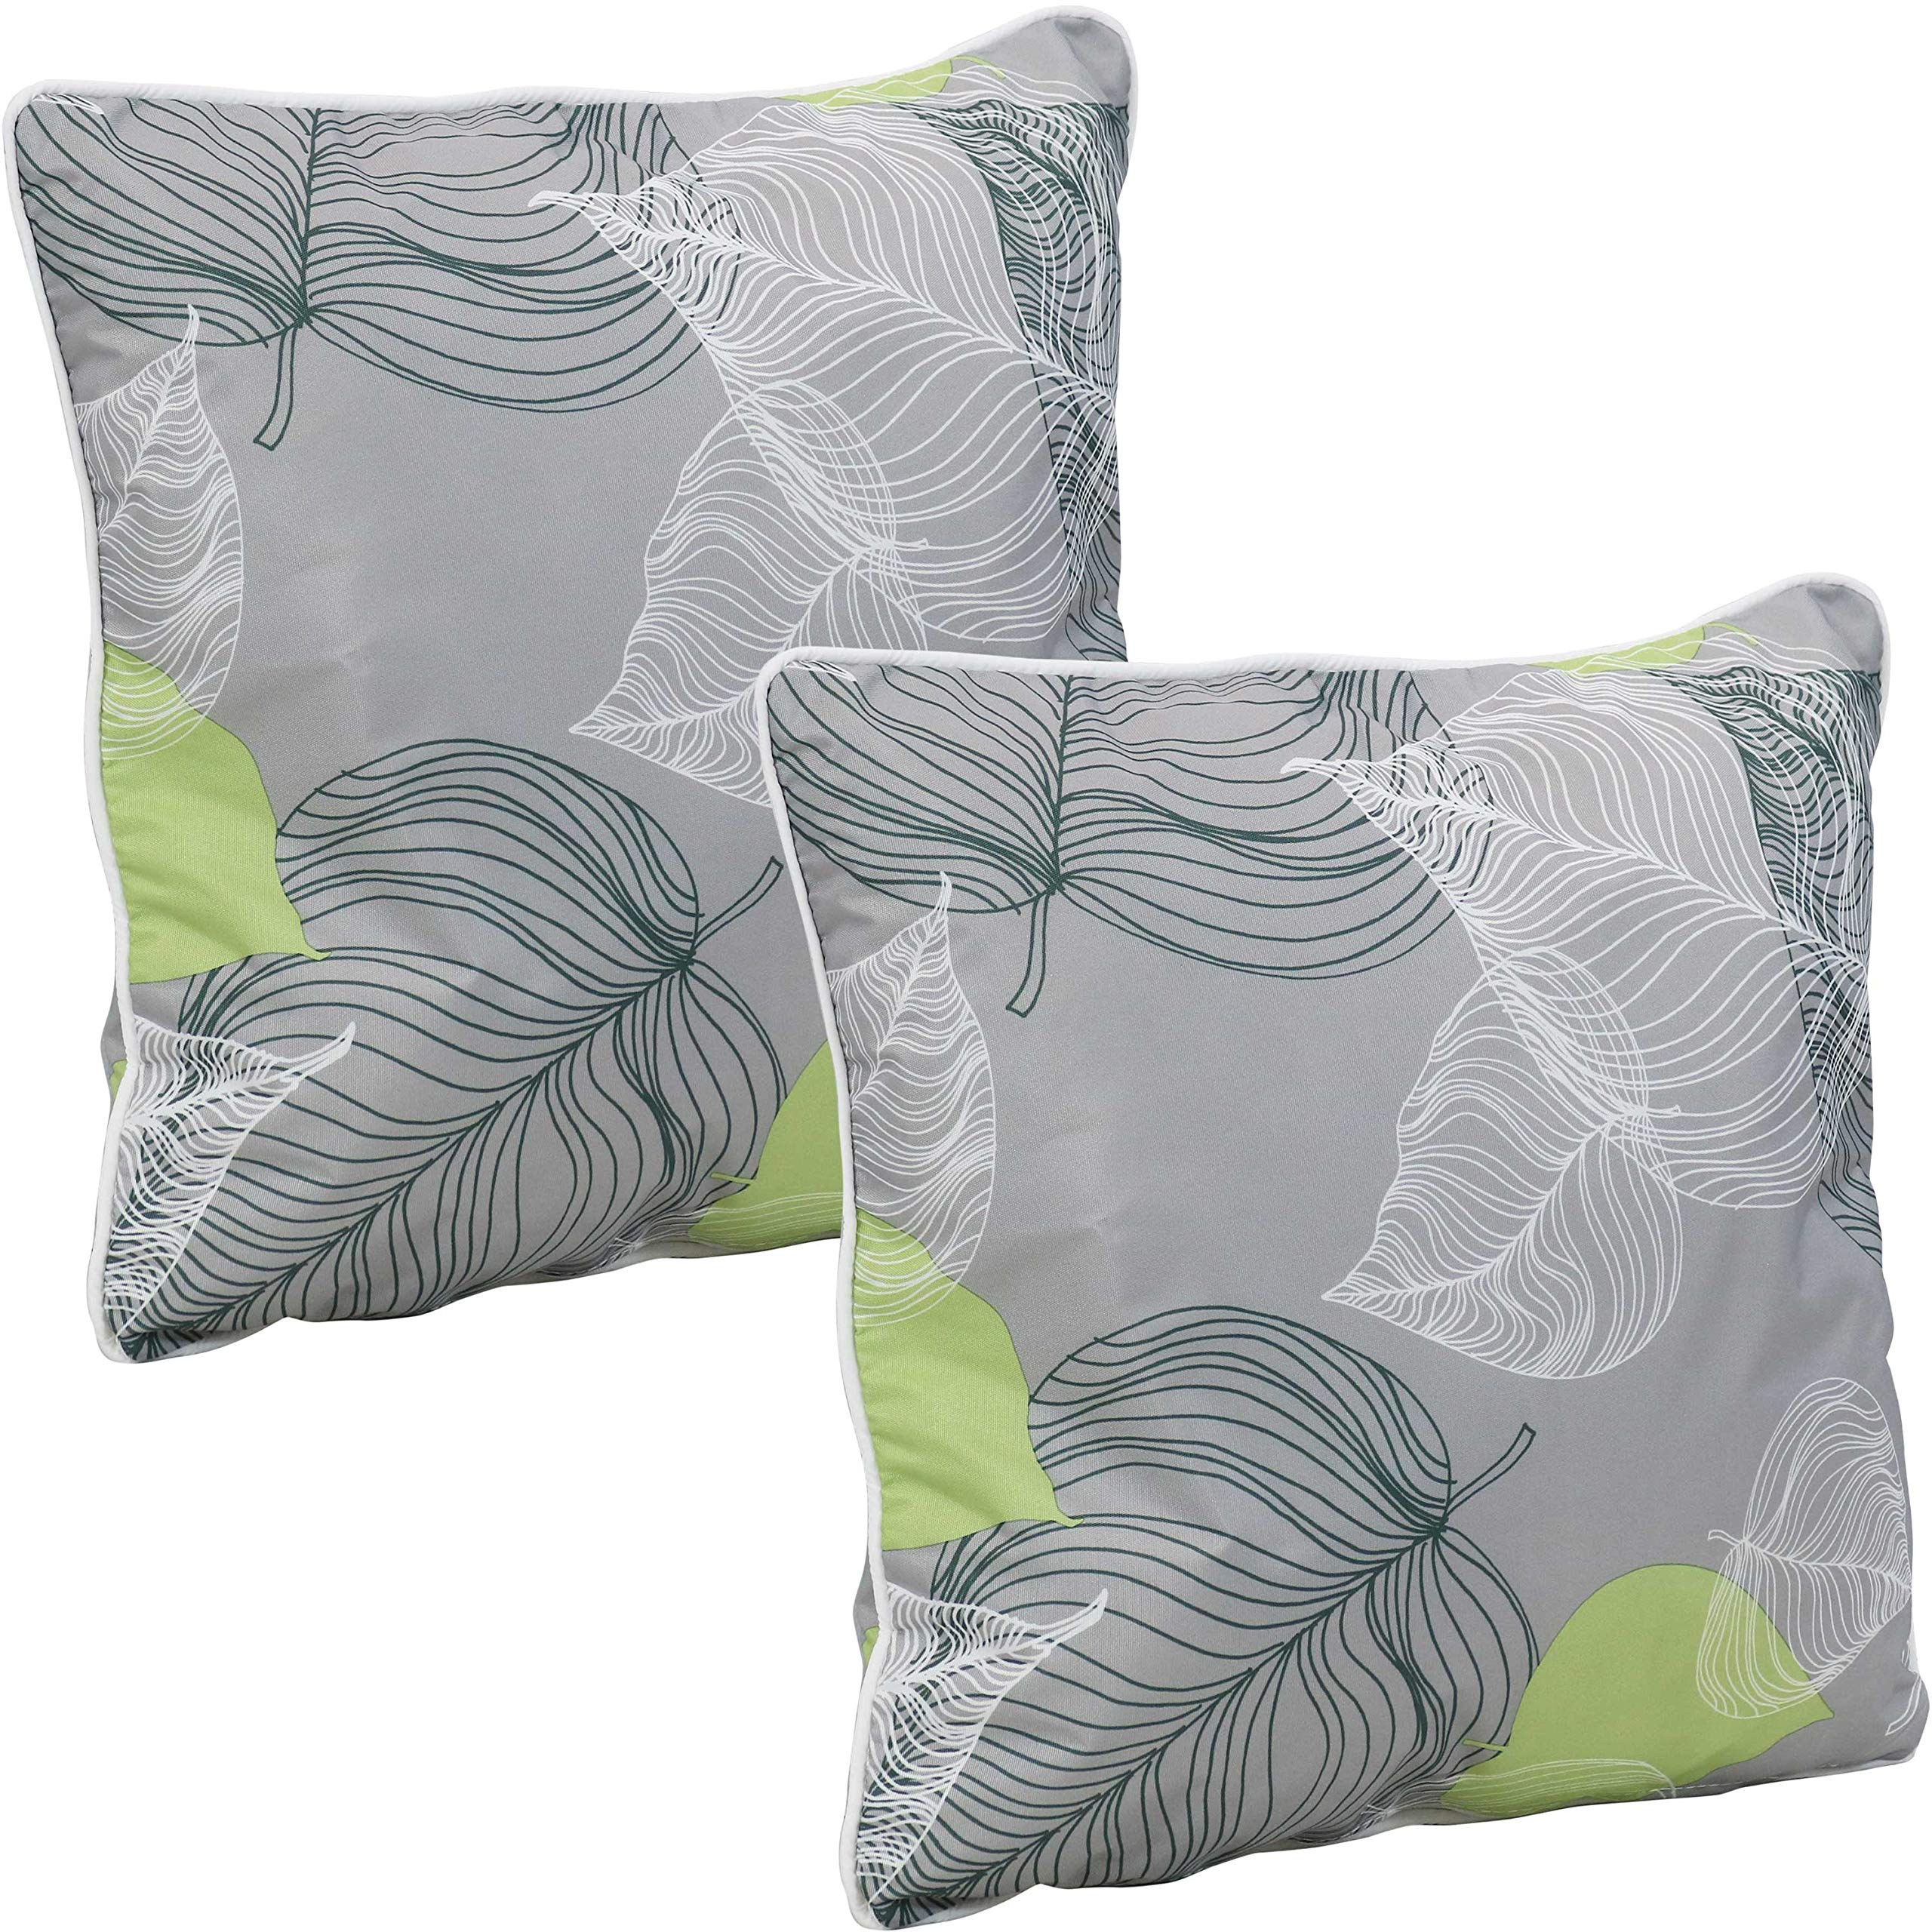 Sunnydaze Set of 20 Indoor/Outdoor Decorative Throw Pillows   20 Inch Square  Accent Toss Pillows for Patio Furniture   Pillow Set for Outside Bench, ...